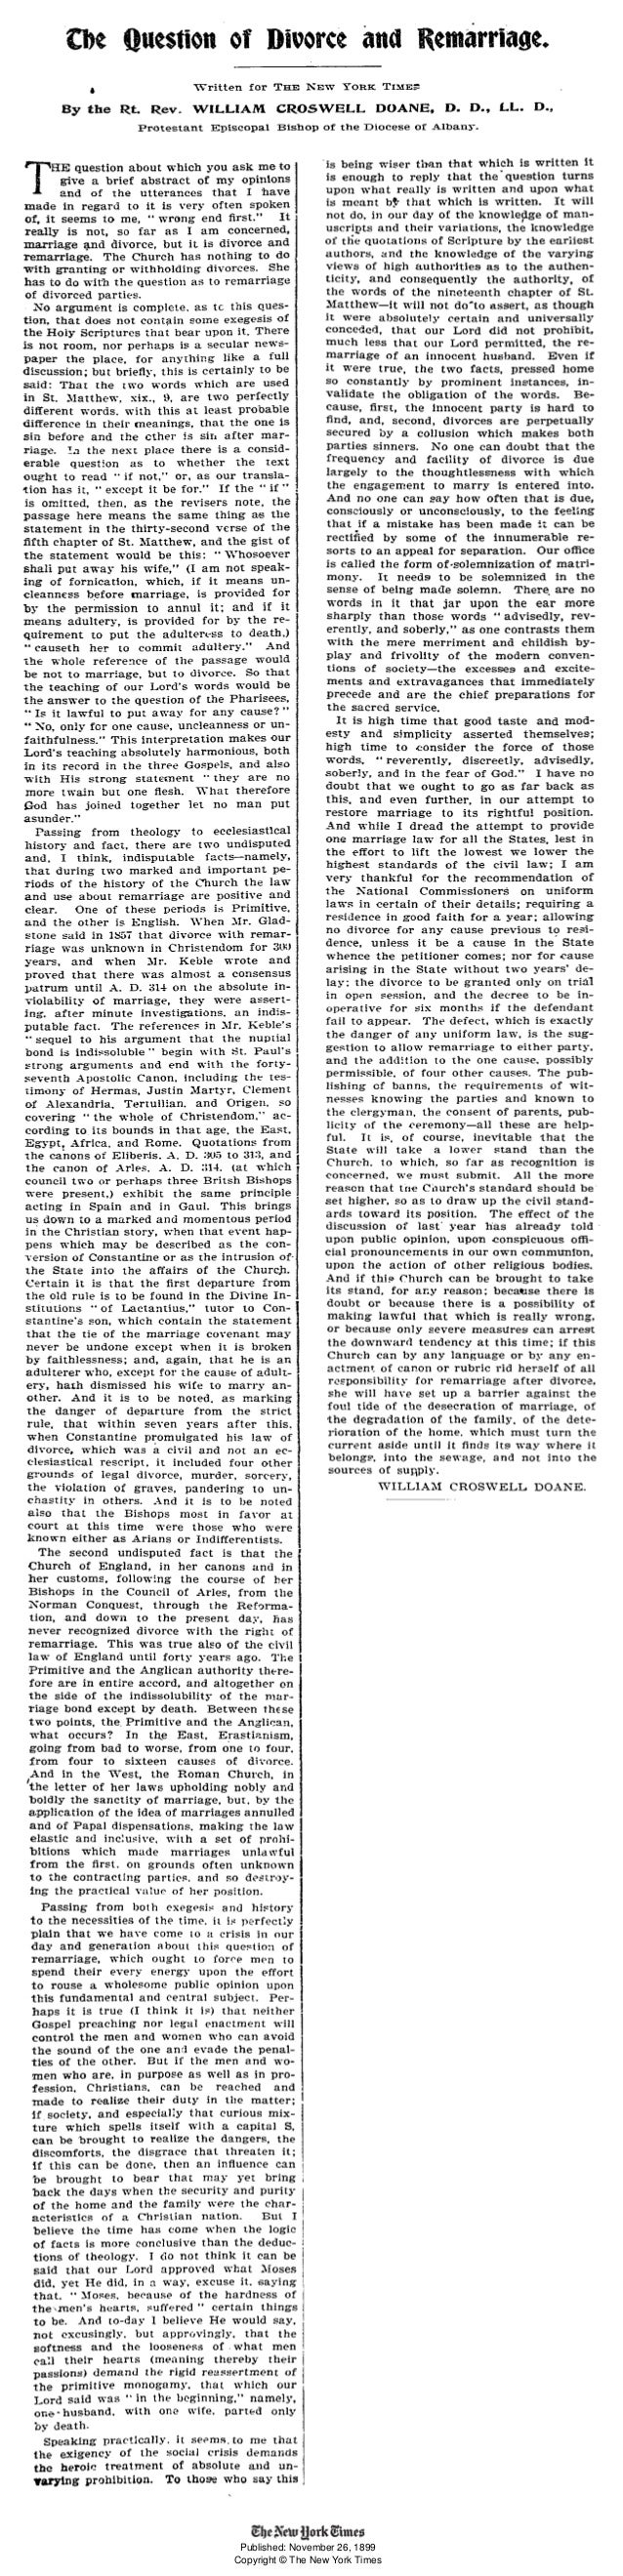 Published: November 26, 1899  Copyright © The New York Times